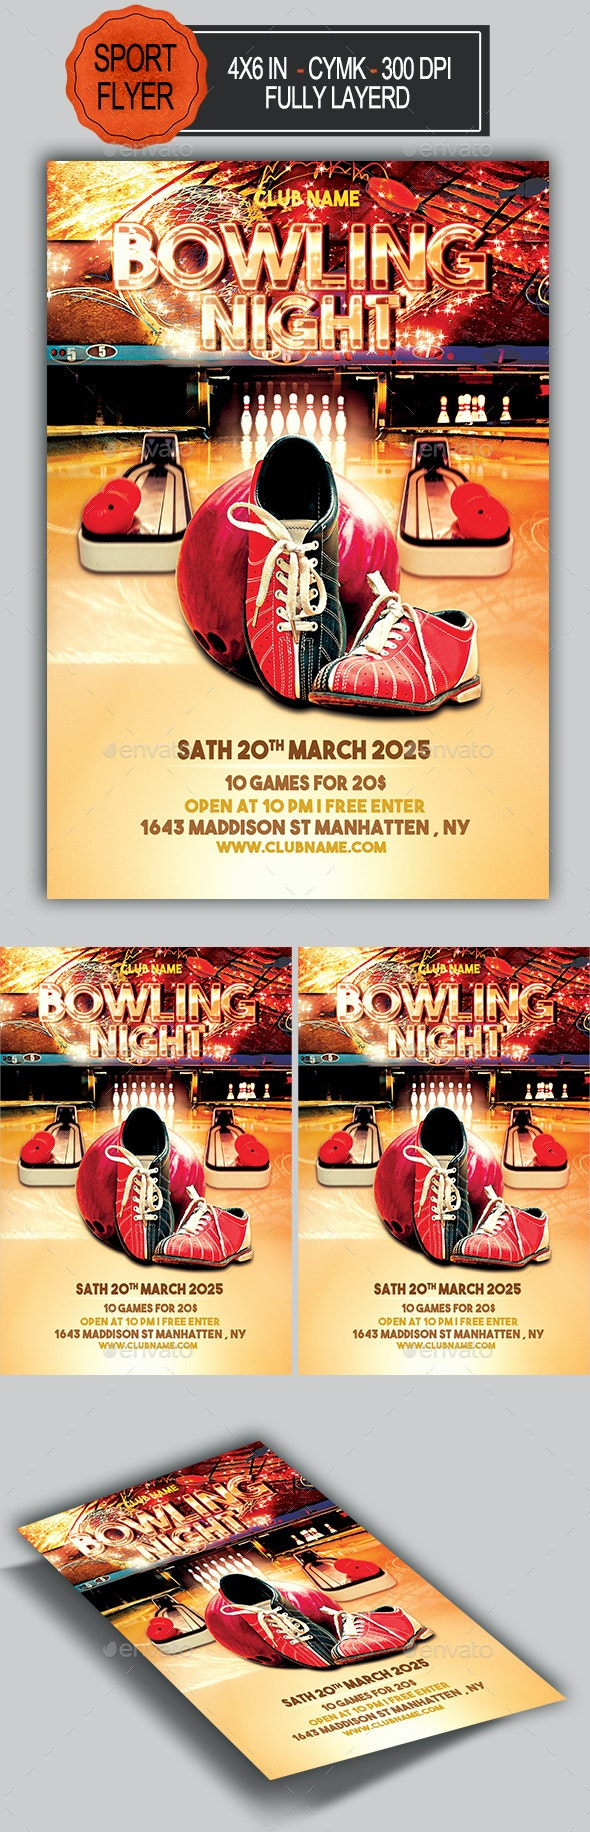 Bowling Flyer - Sports Events